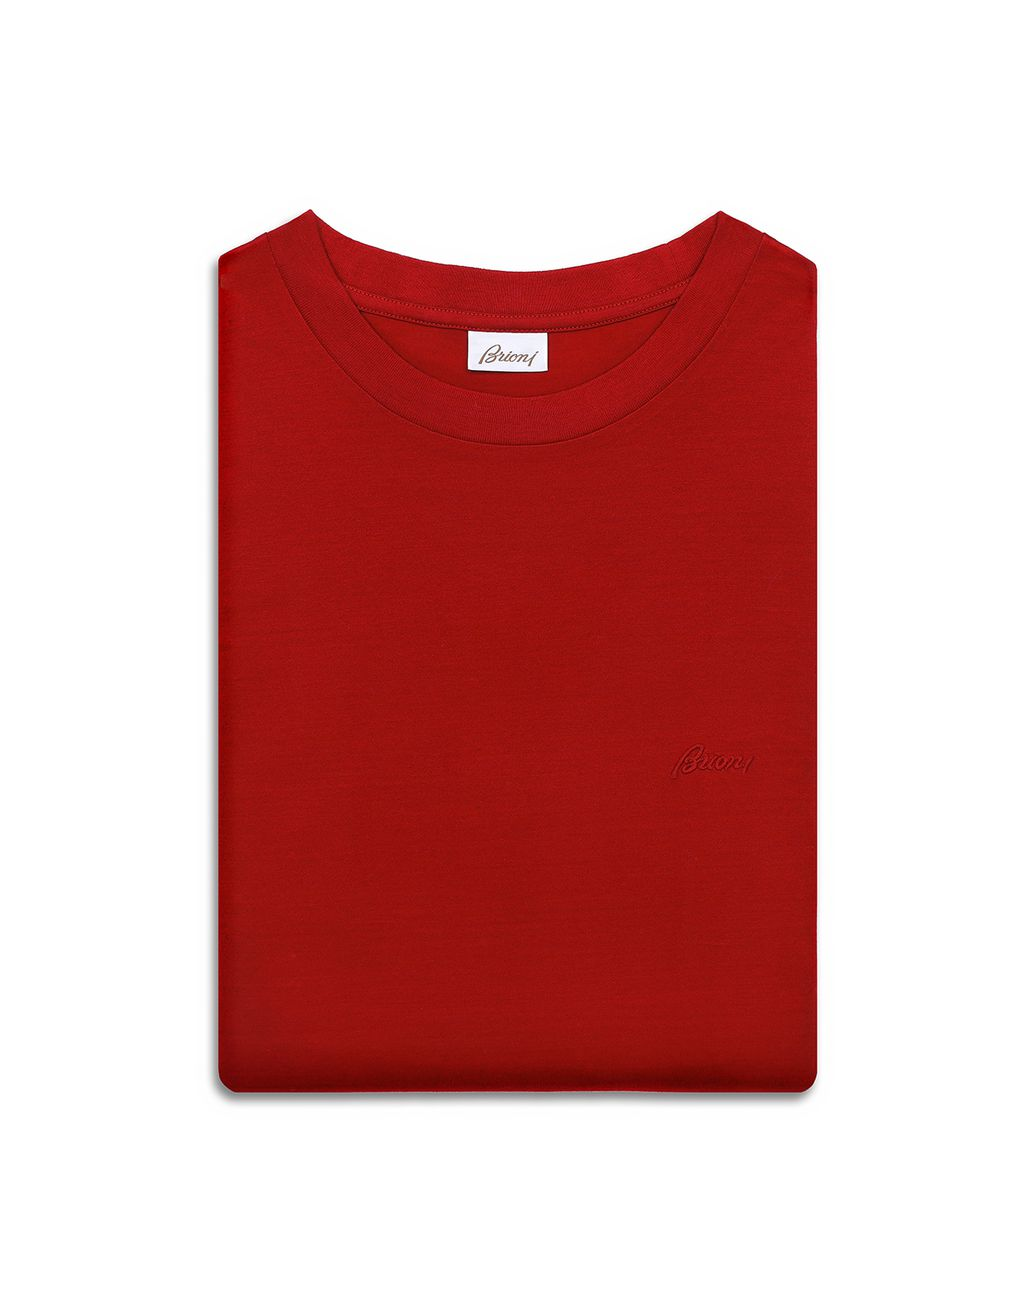 BRIONI Red Logoed T-Shirt T-shirts & polos Homme e